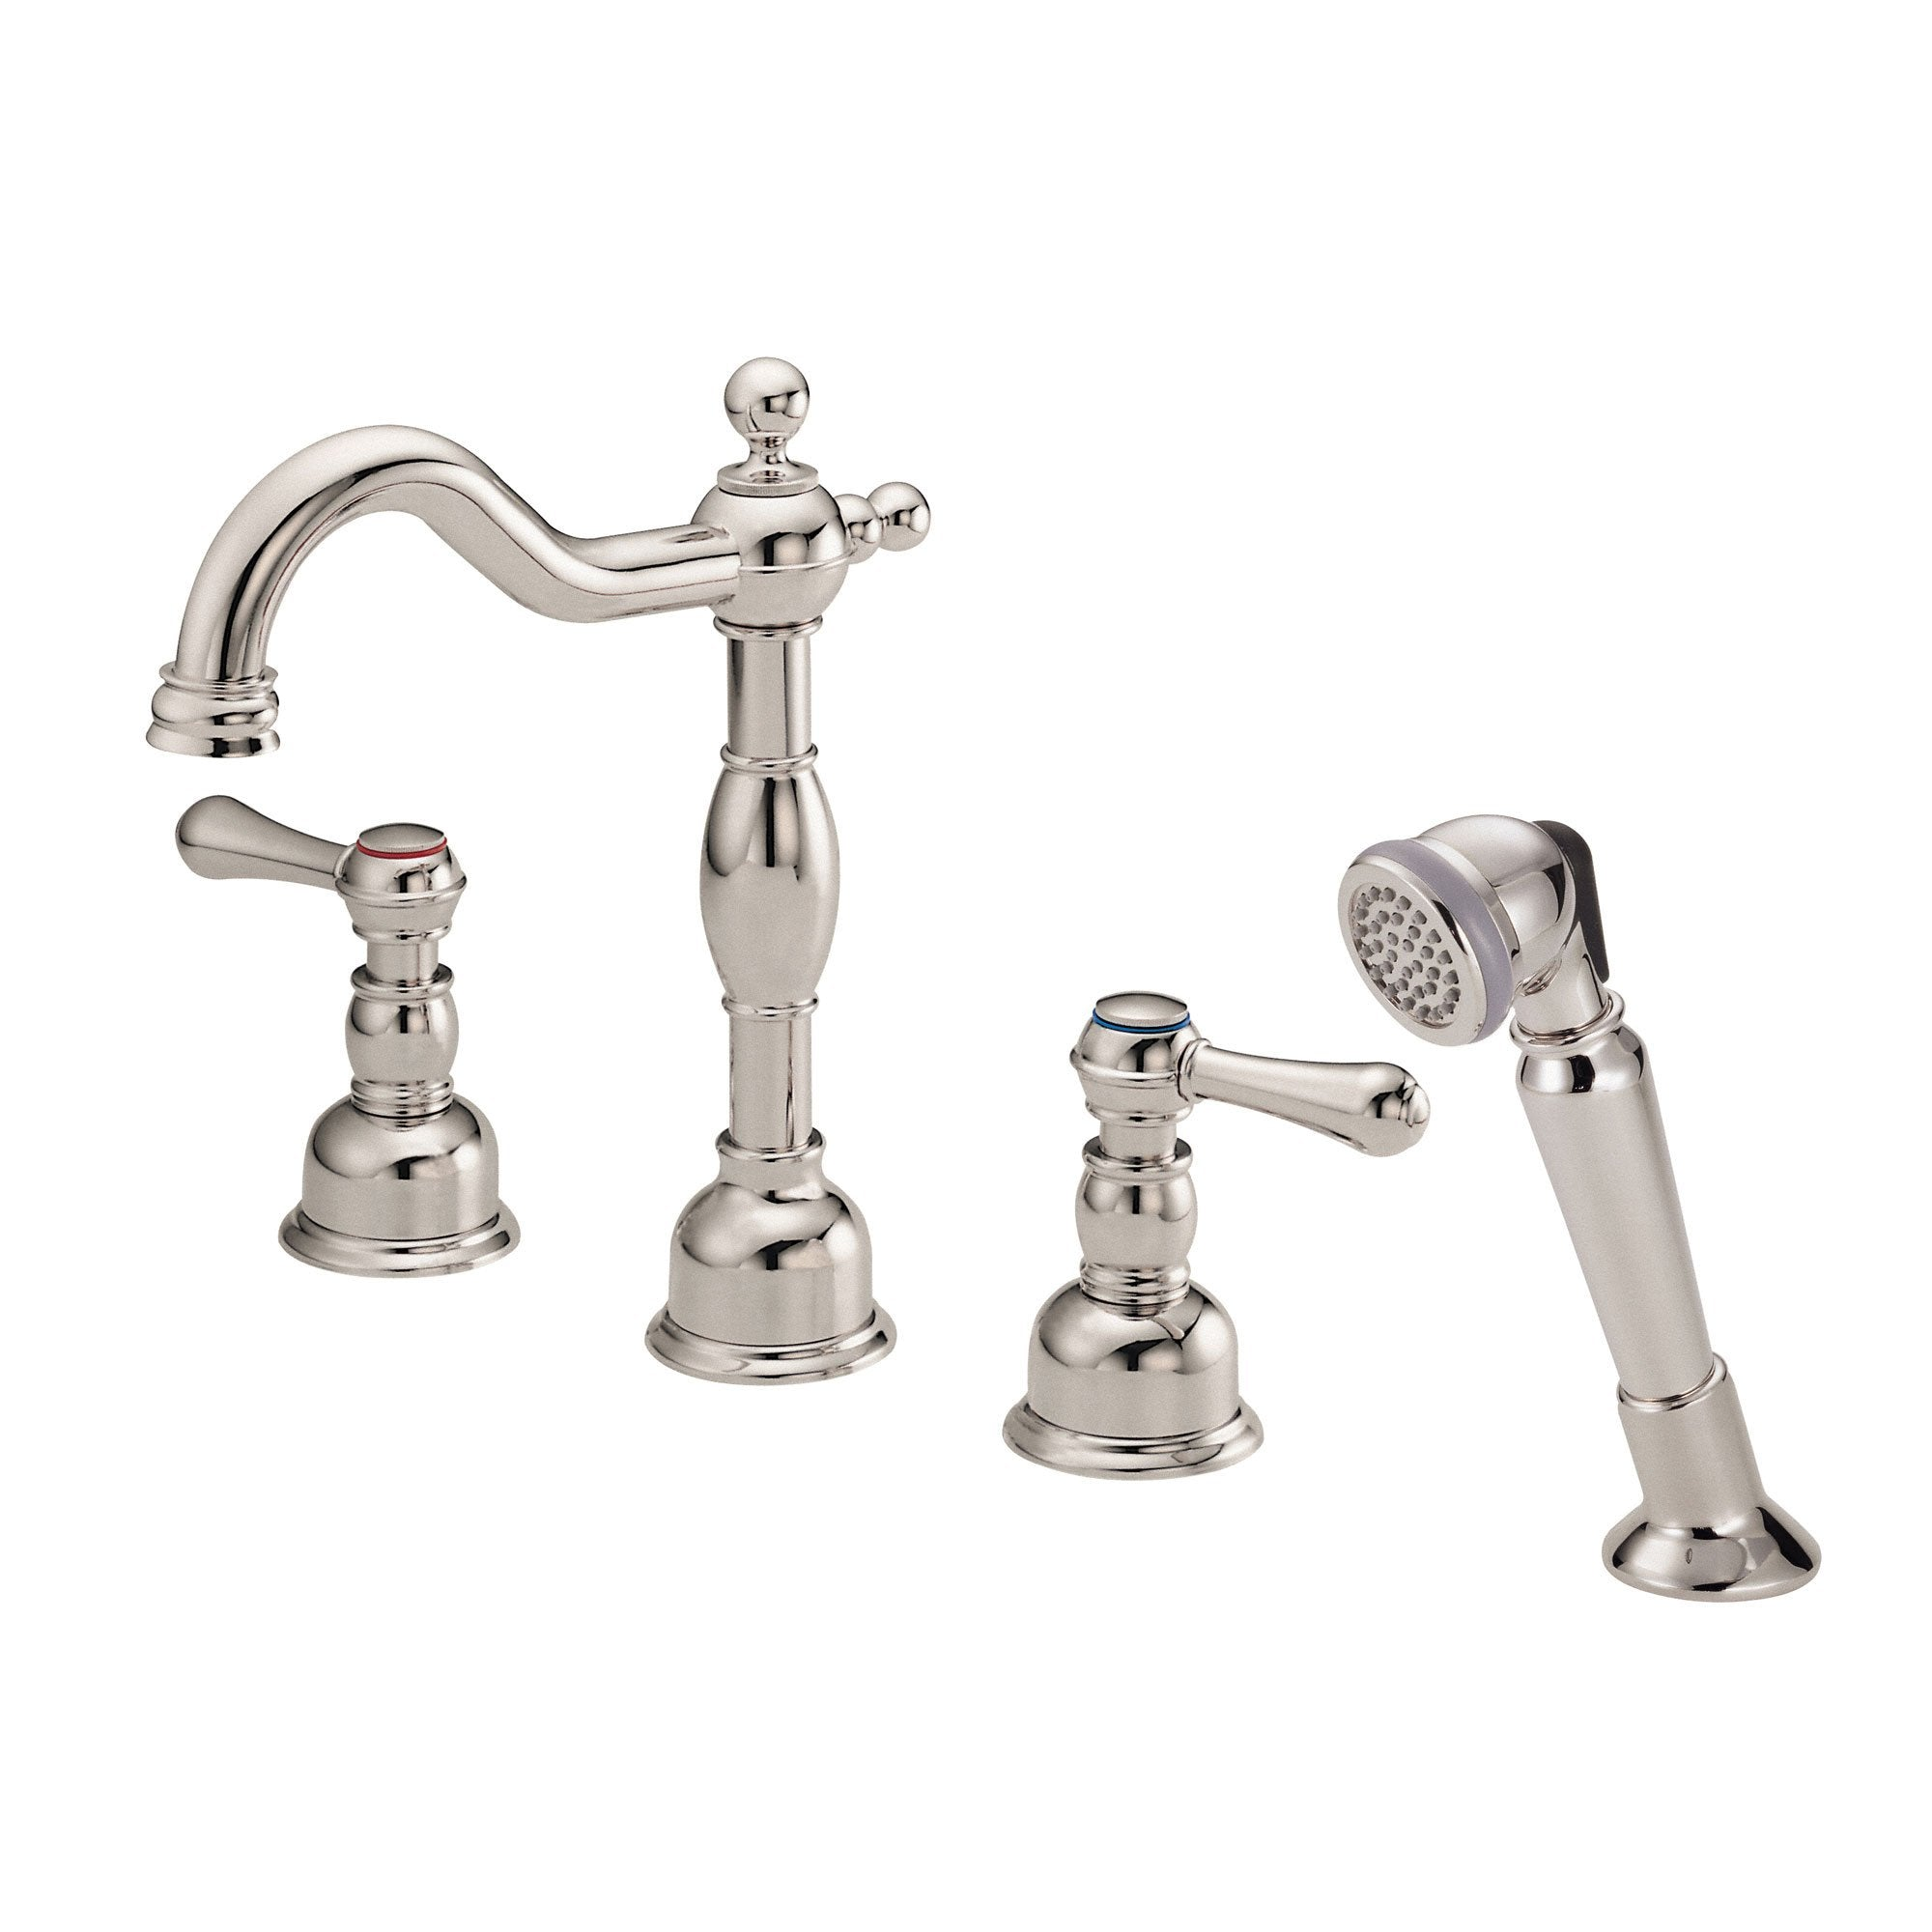 Danze Opulence Polished Nickel Traditional Roman Tub Filler Faucet with Hand Shower INCLUDES Rough-in Valve